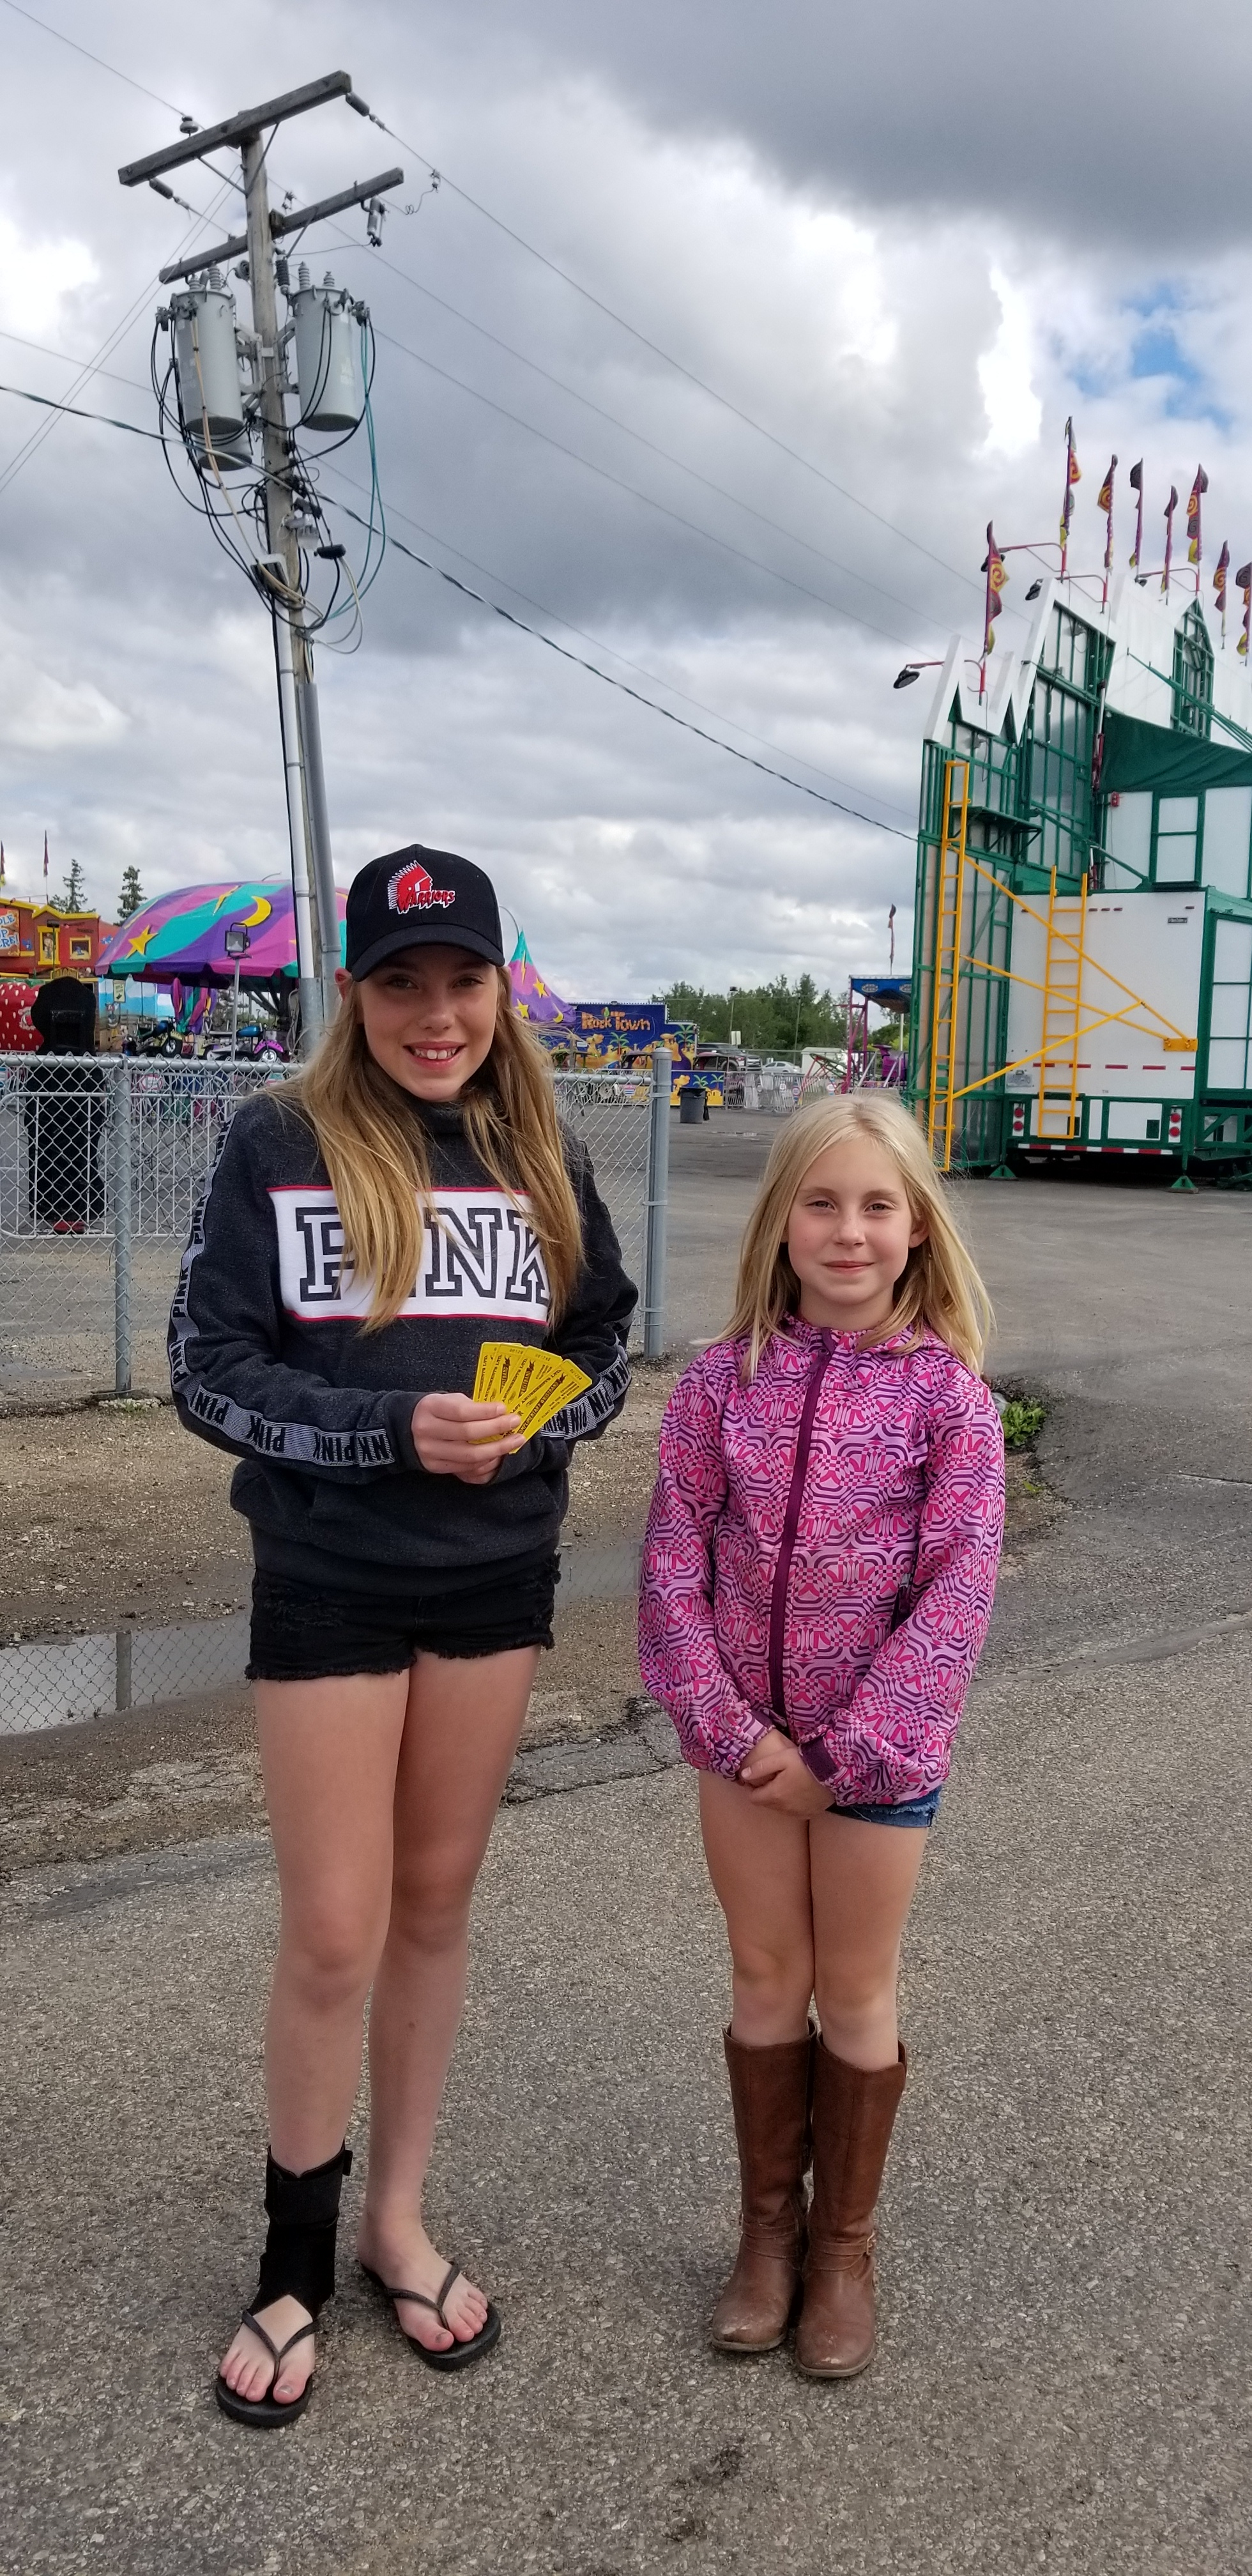 It may have been cloudy but the winners were all happy about the free passes to the Moose Jaw Hometown Fair